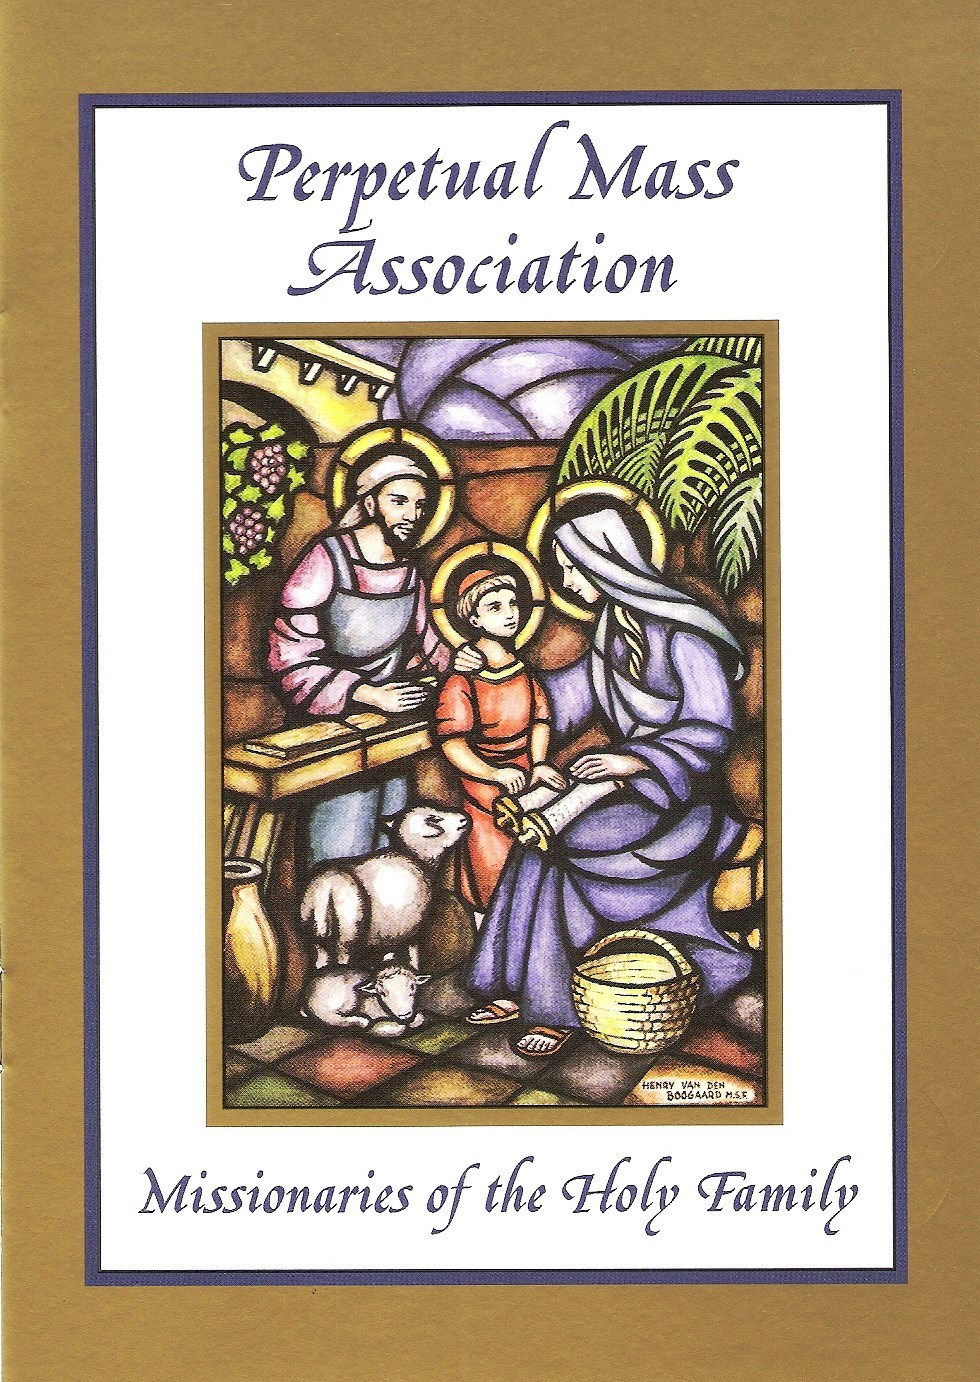 Our beautiful Perpetual Mass Card contains original artwork and the Holy Family Prayer.